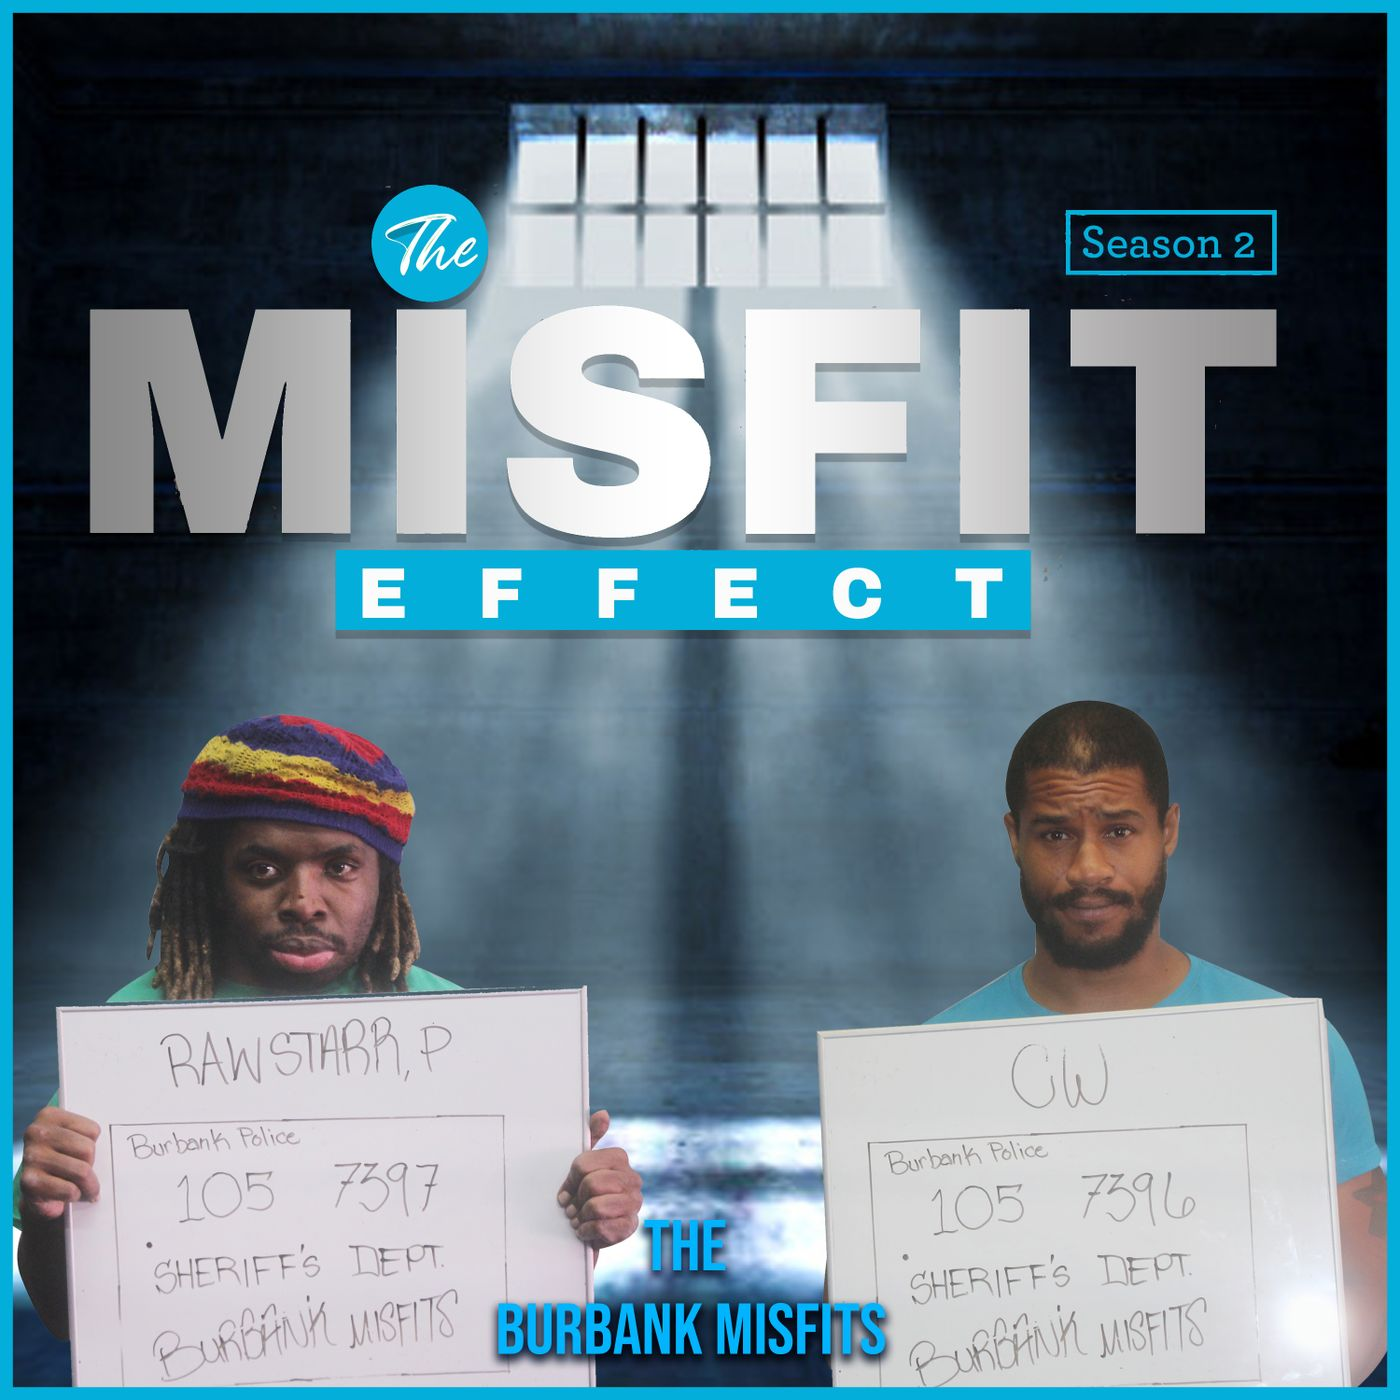 The Misfit Effect